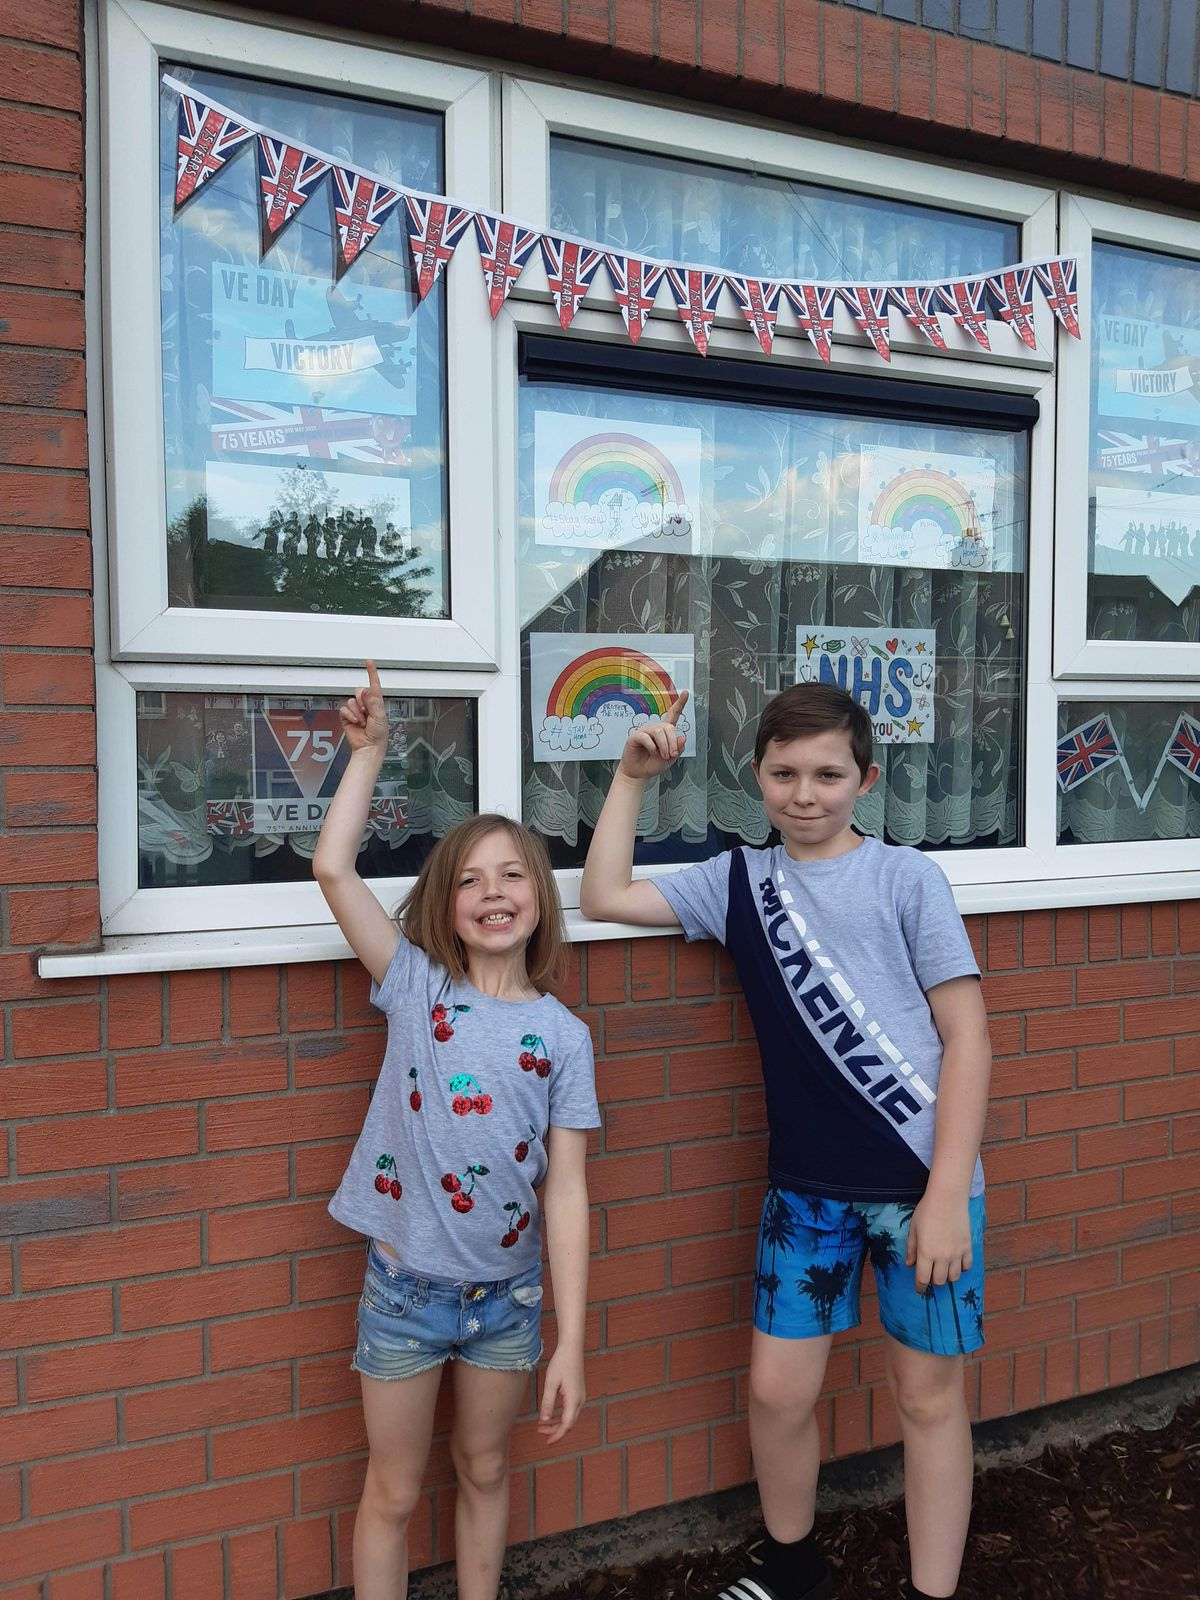 The Halls siblings with their decorations in Mackay Road, Bloxwich